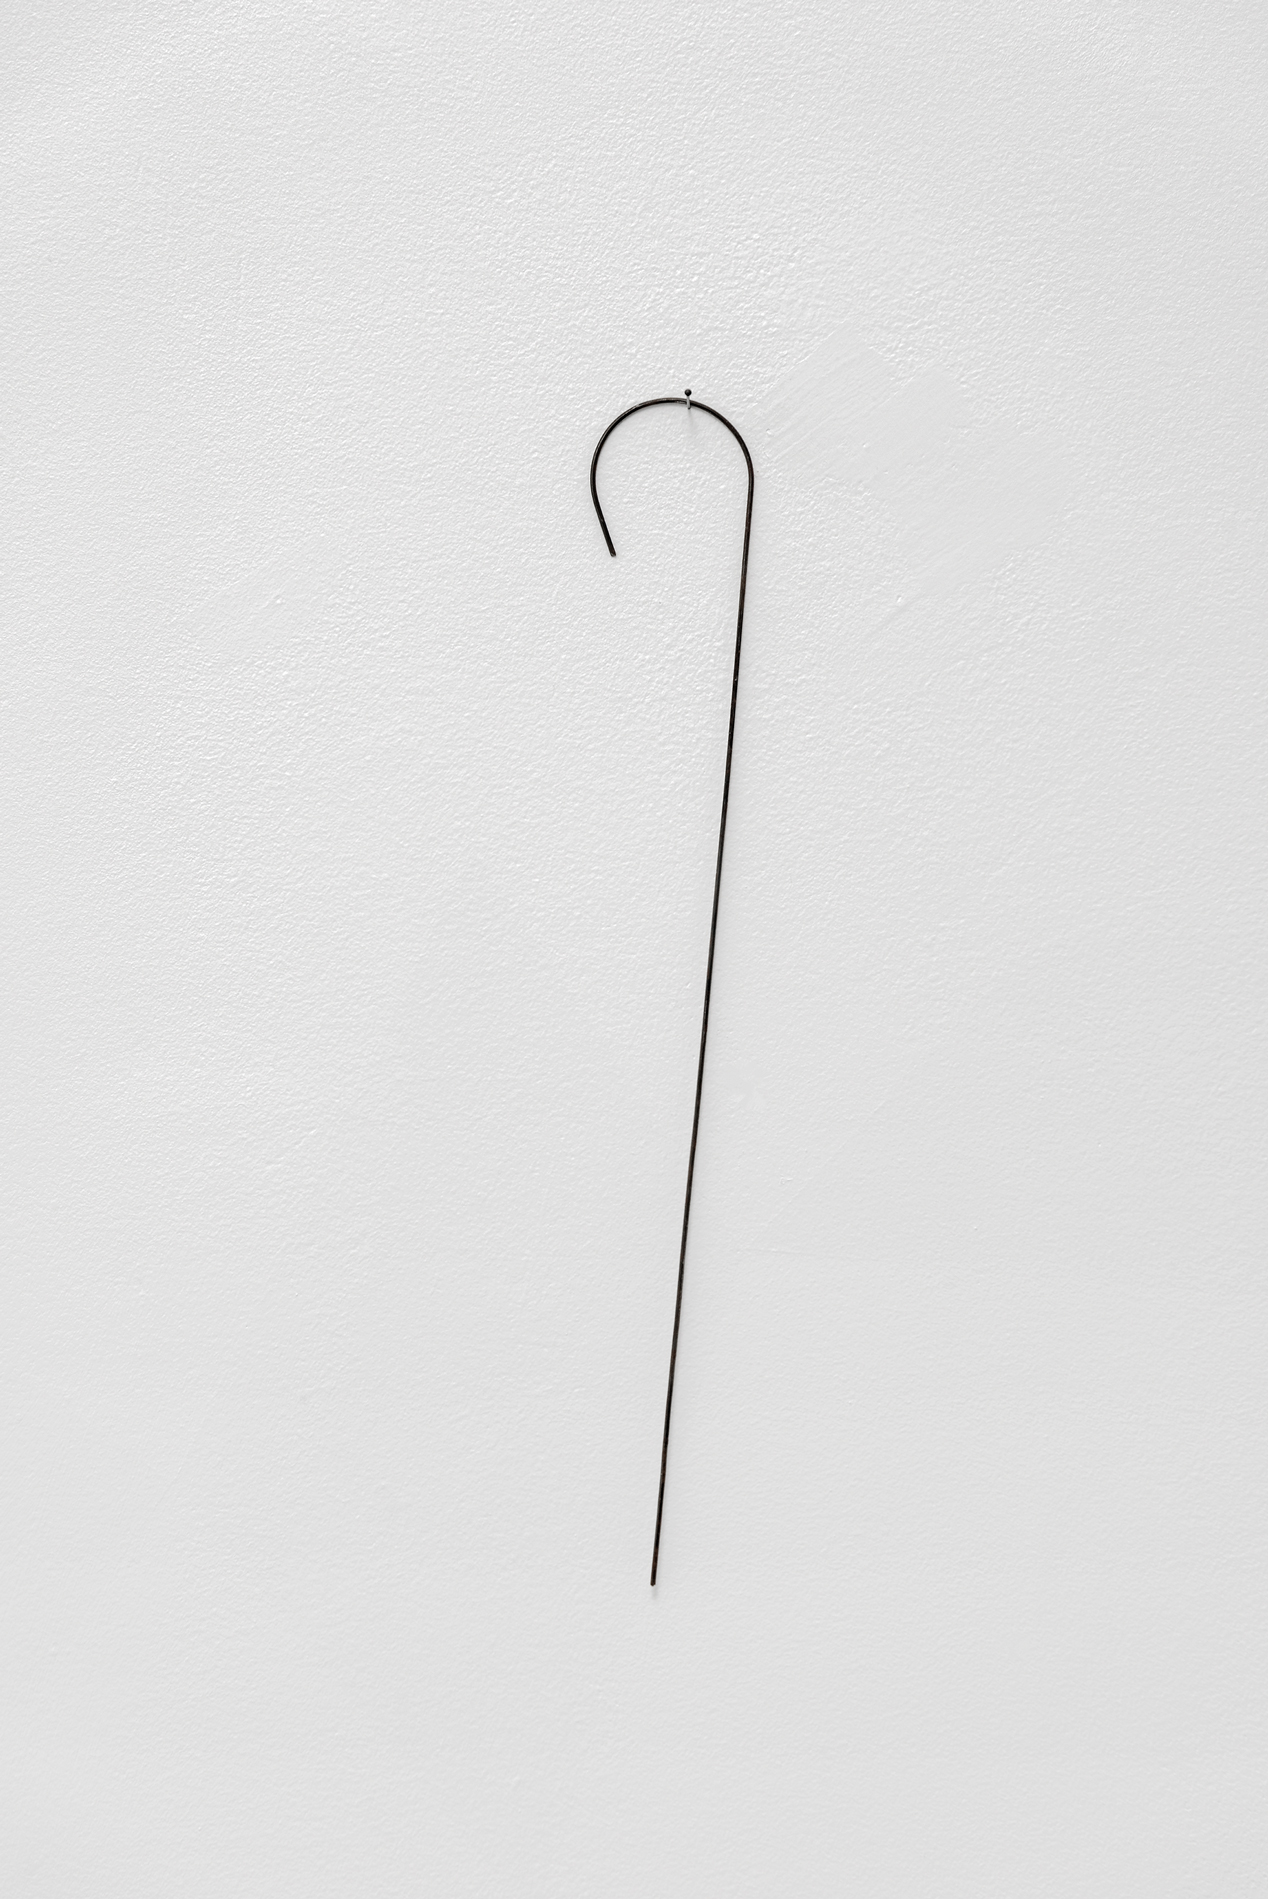 , 2017, Annealed steel, 33 x 5 x 0,2 cm, , unique artwork, Photo: Aurélien Mole